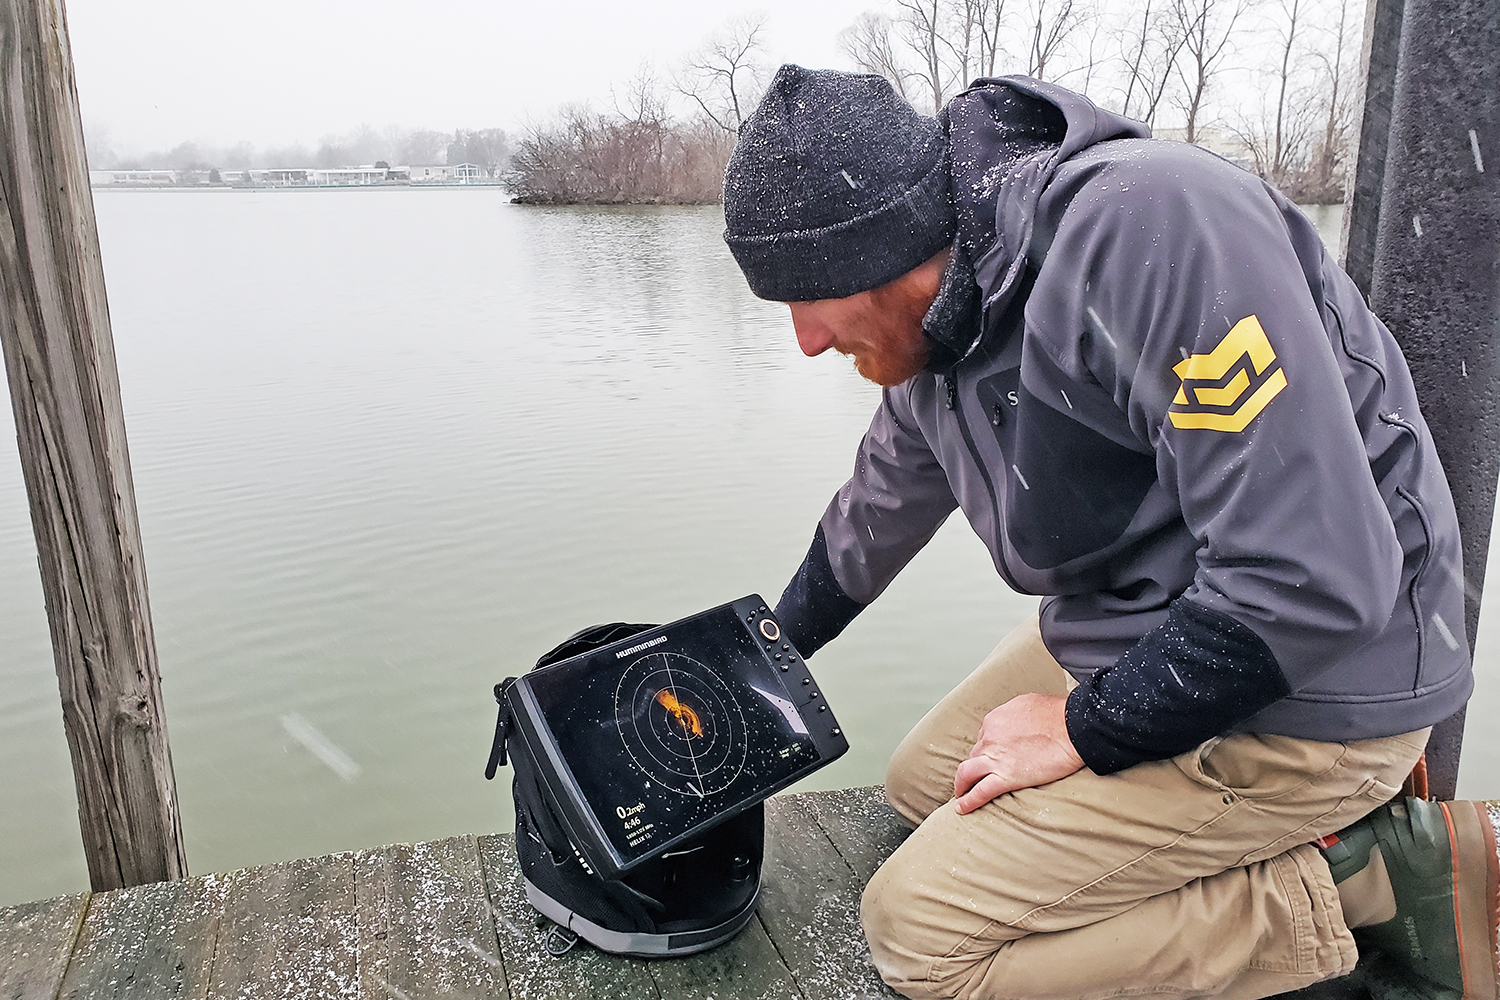 Having adequate backup power is critical, but lithium batteries make life much easier in boats and on the ice